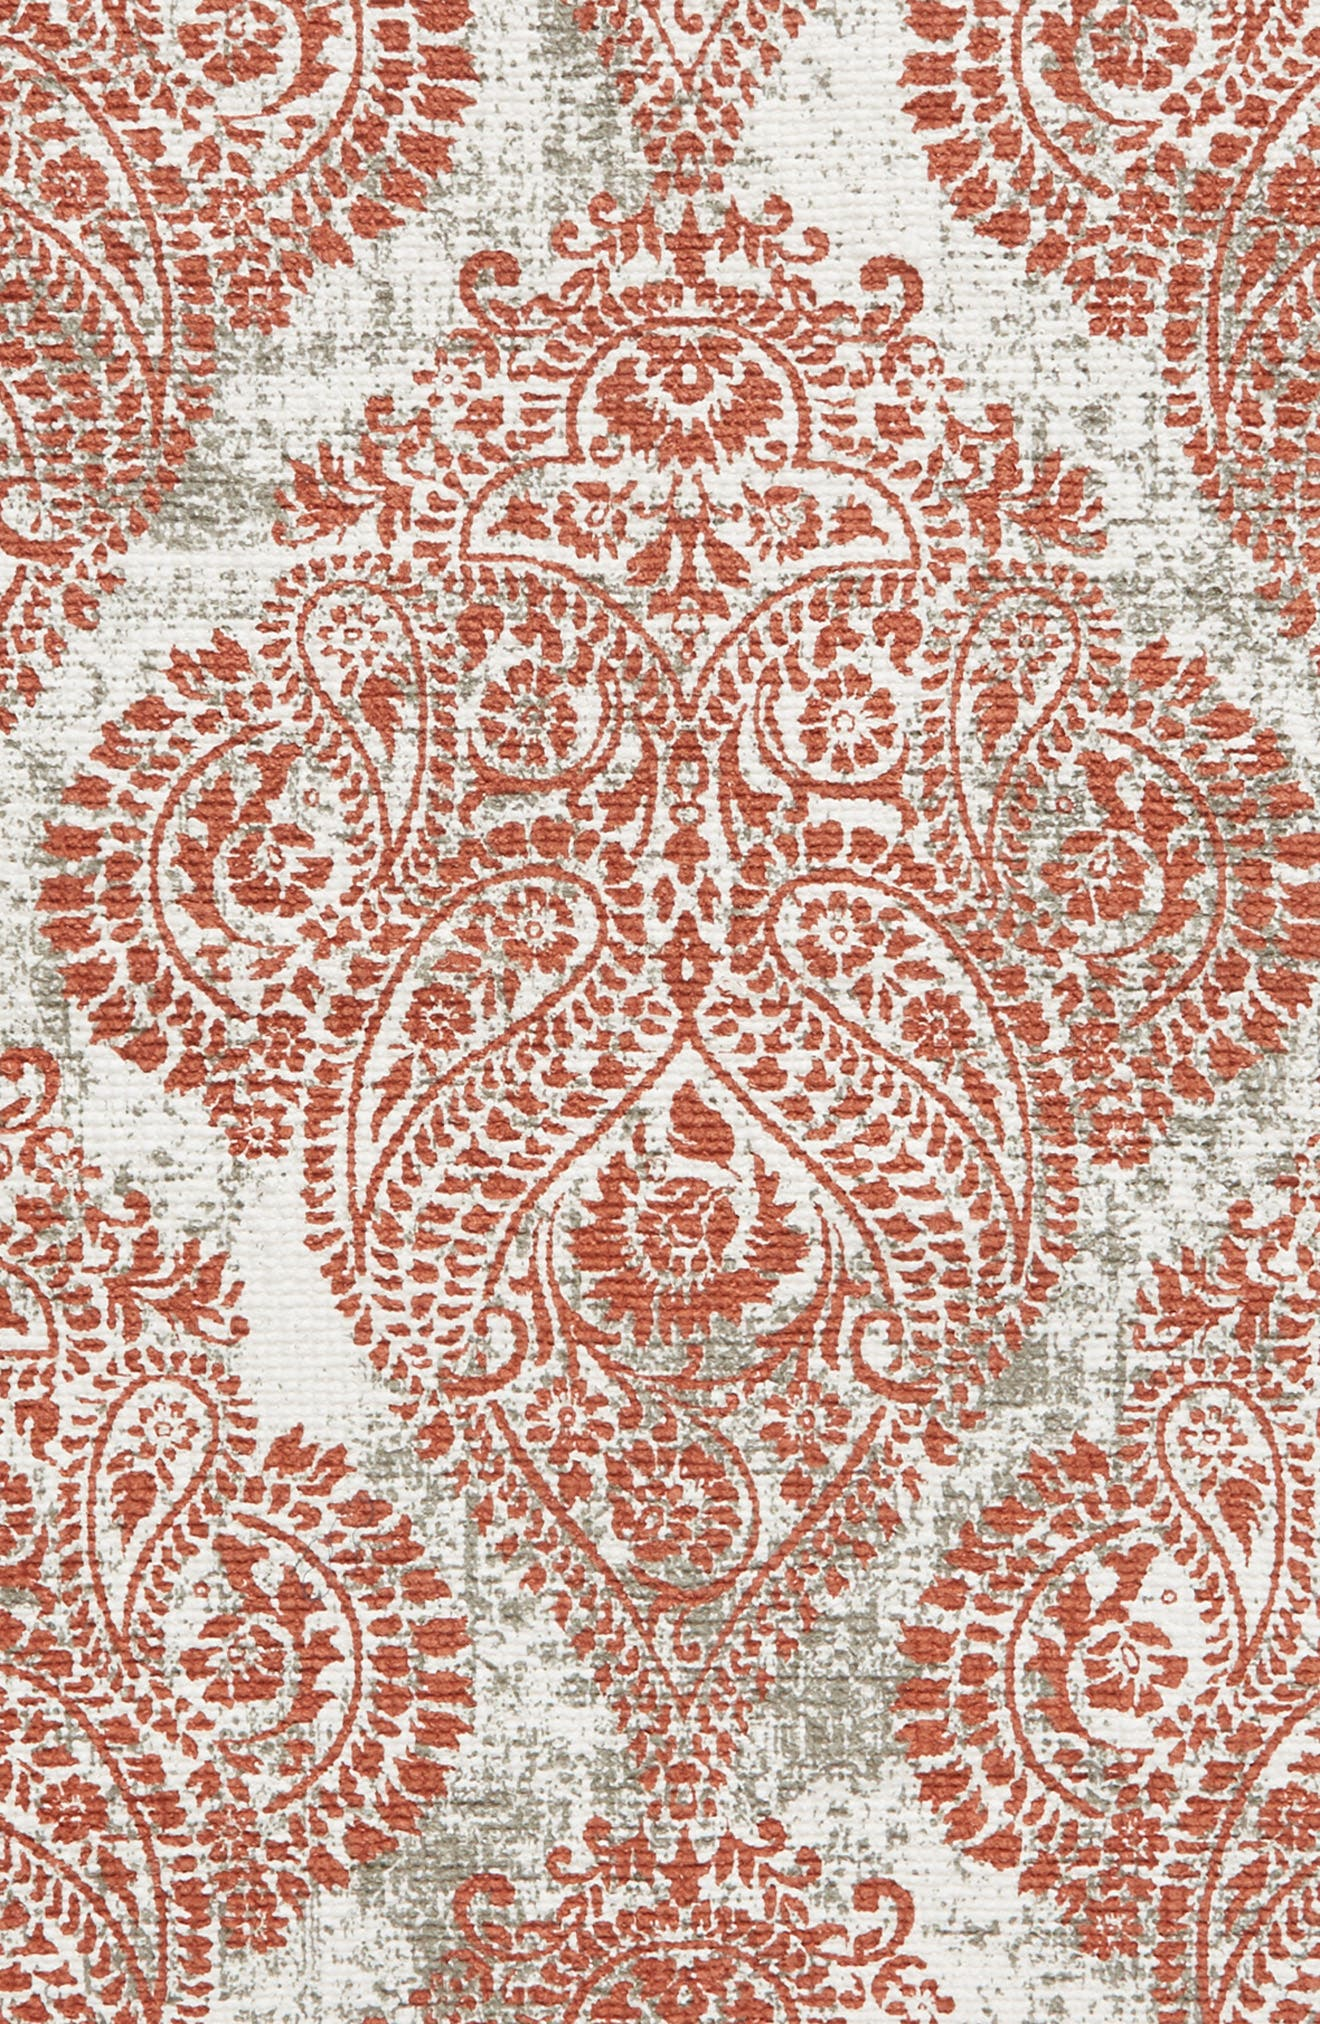 Paisley Fringe Rug,                             Alternate thumbnail 3, color,                             Rust Redwood 2X3